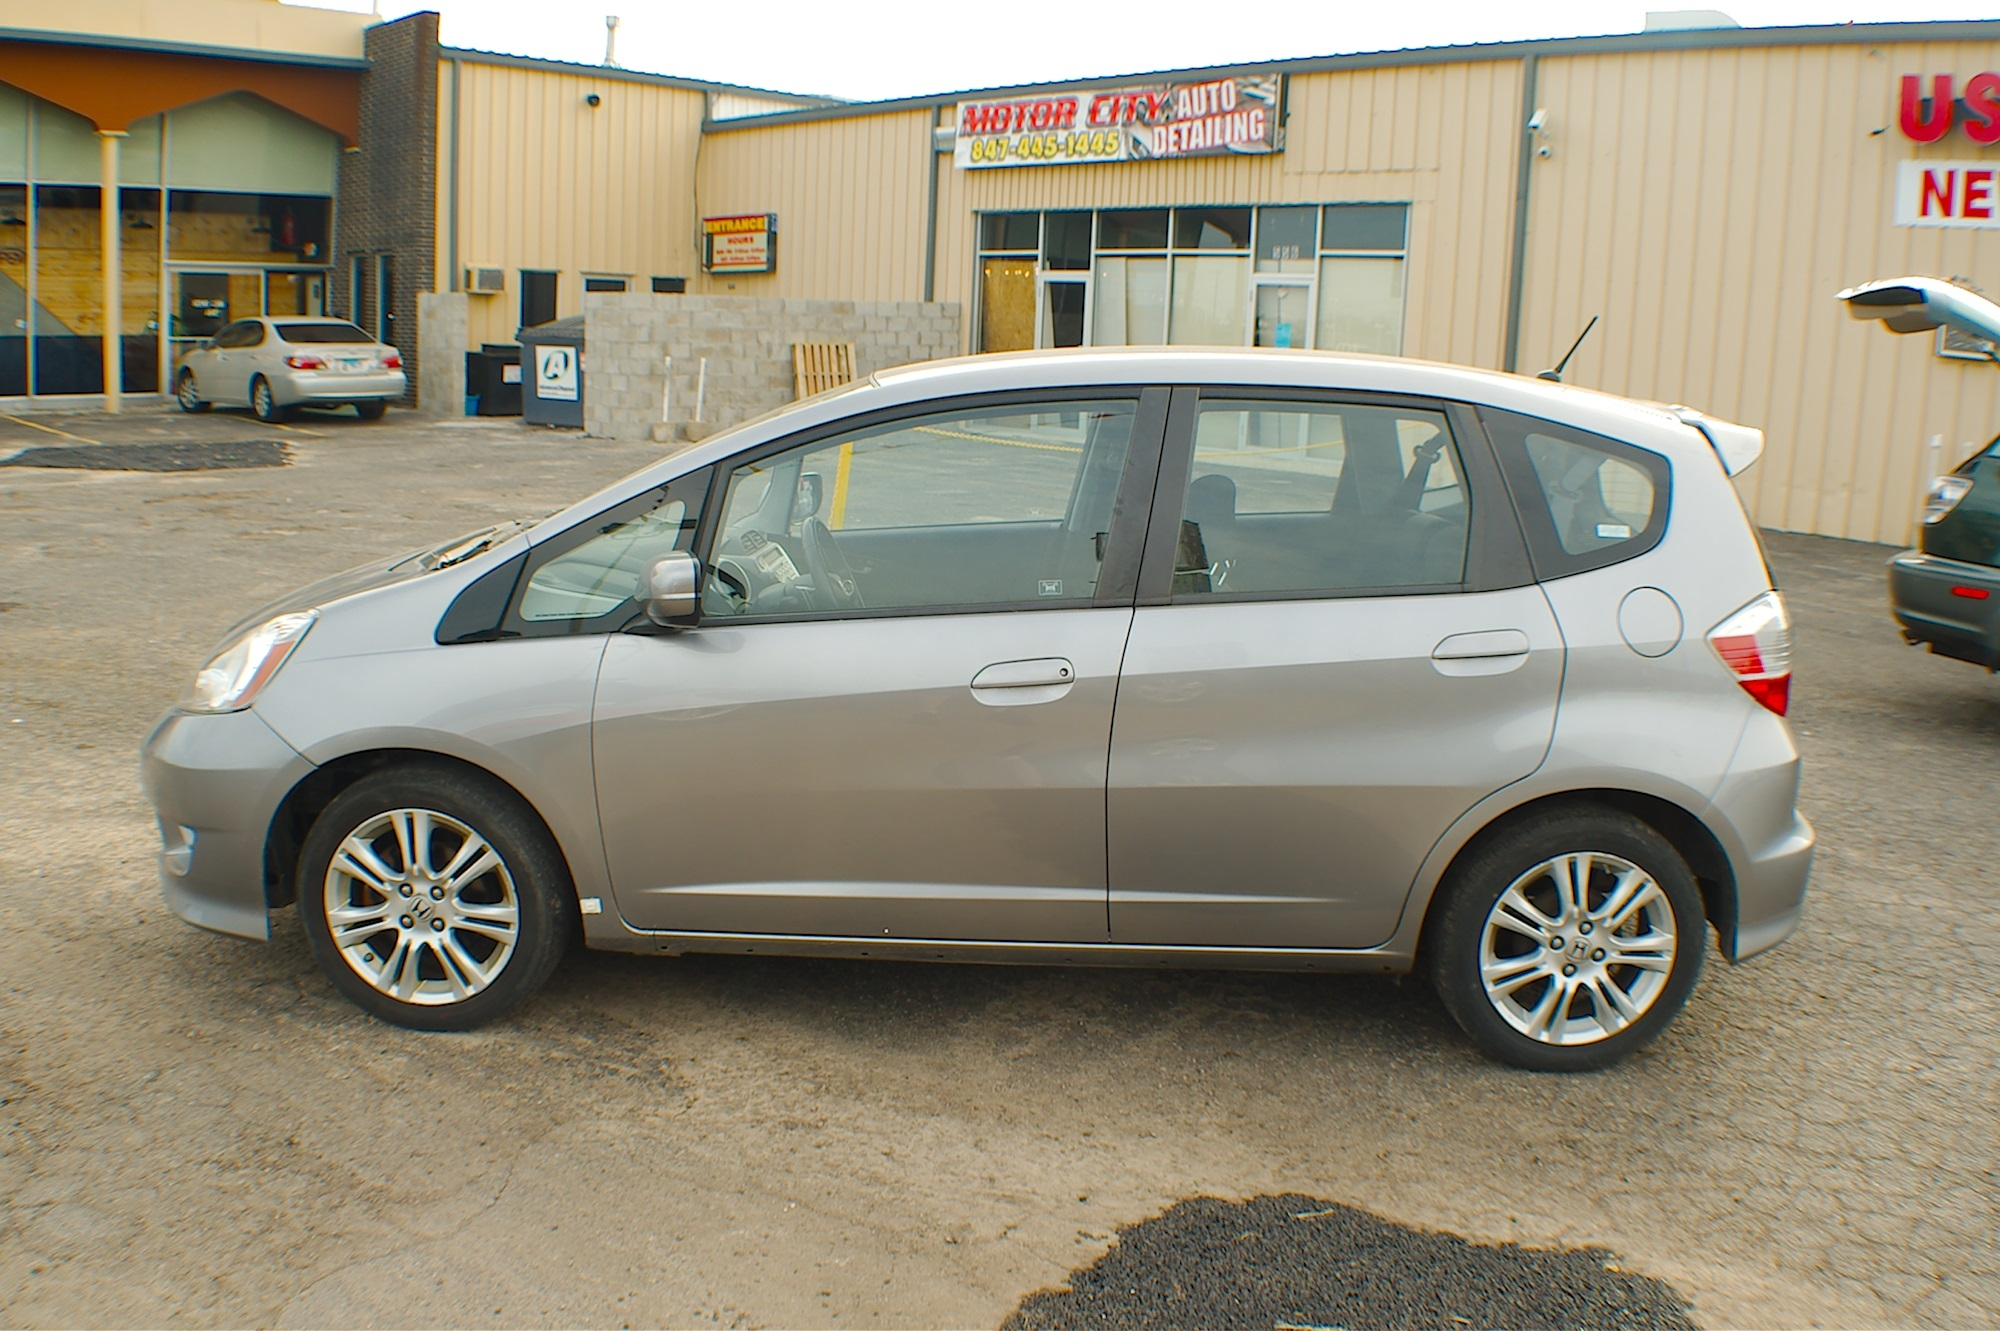 2009 Honda Fit Gray Hatchback Used Car Sale Fox River Grove Grayslake Volo Waucanda